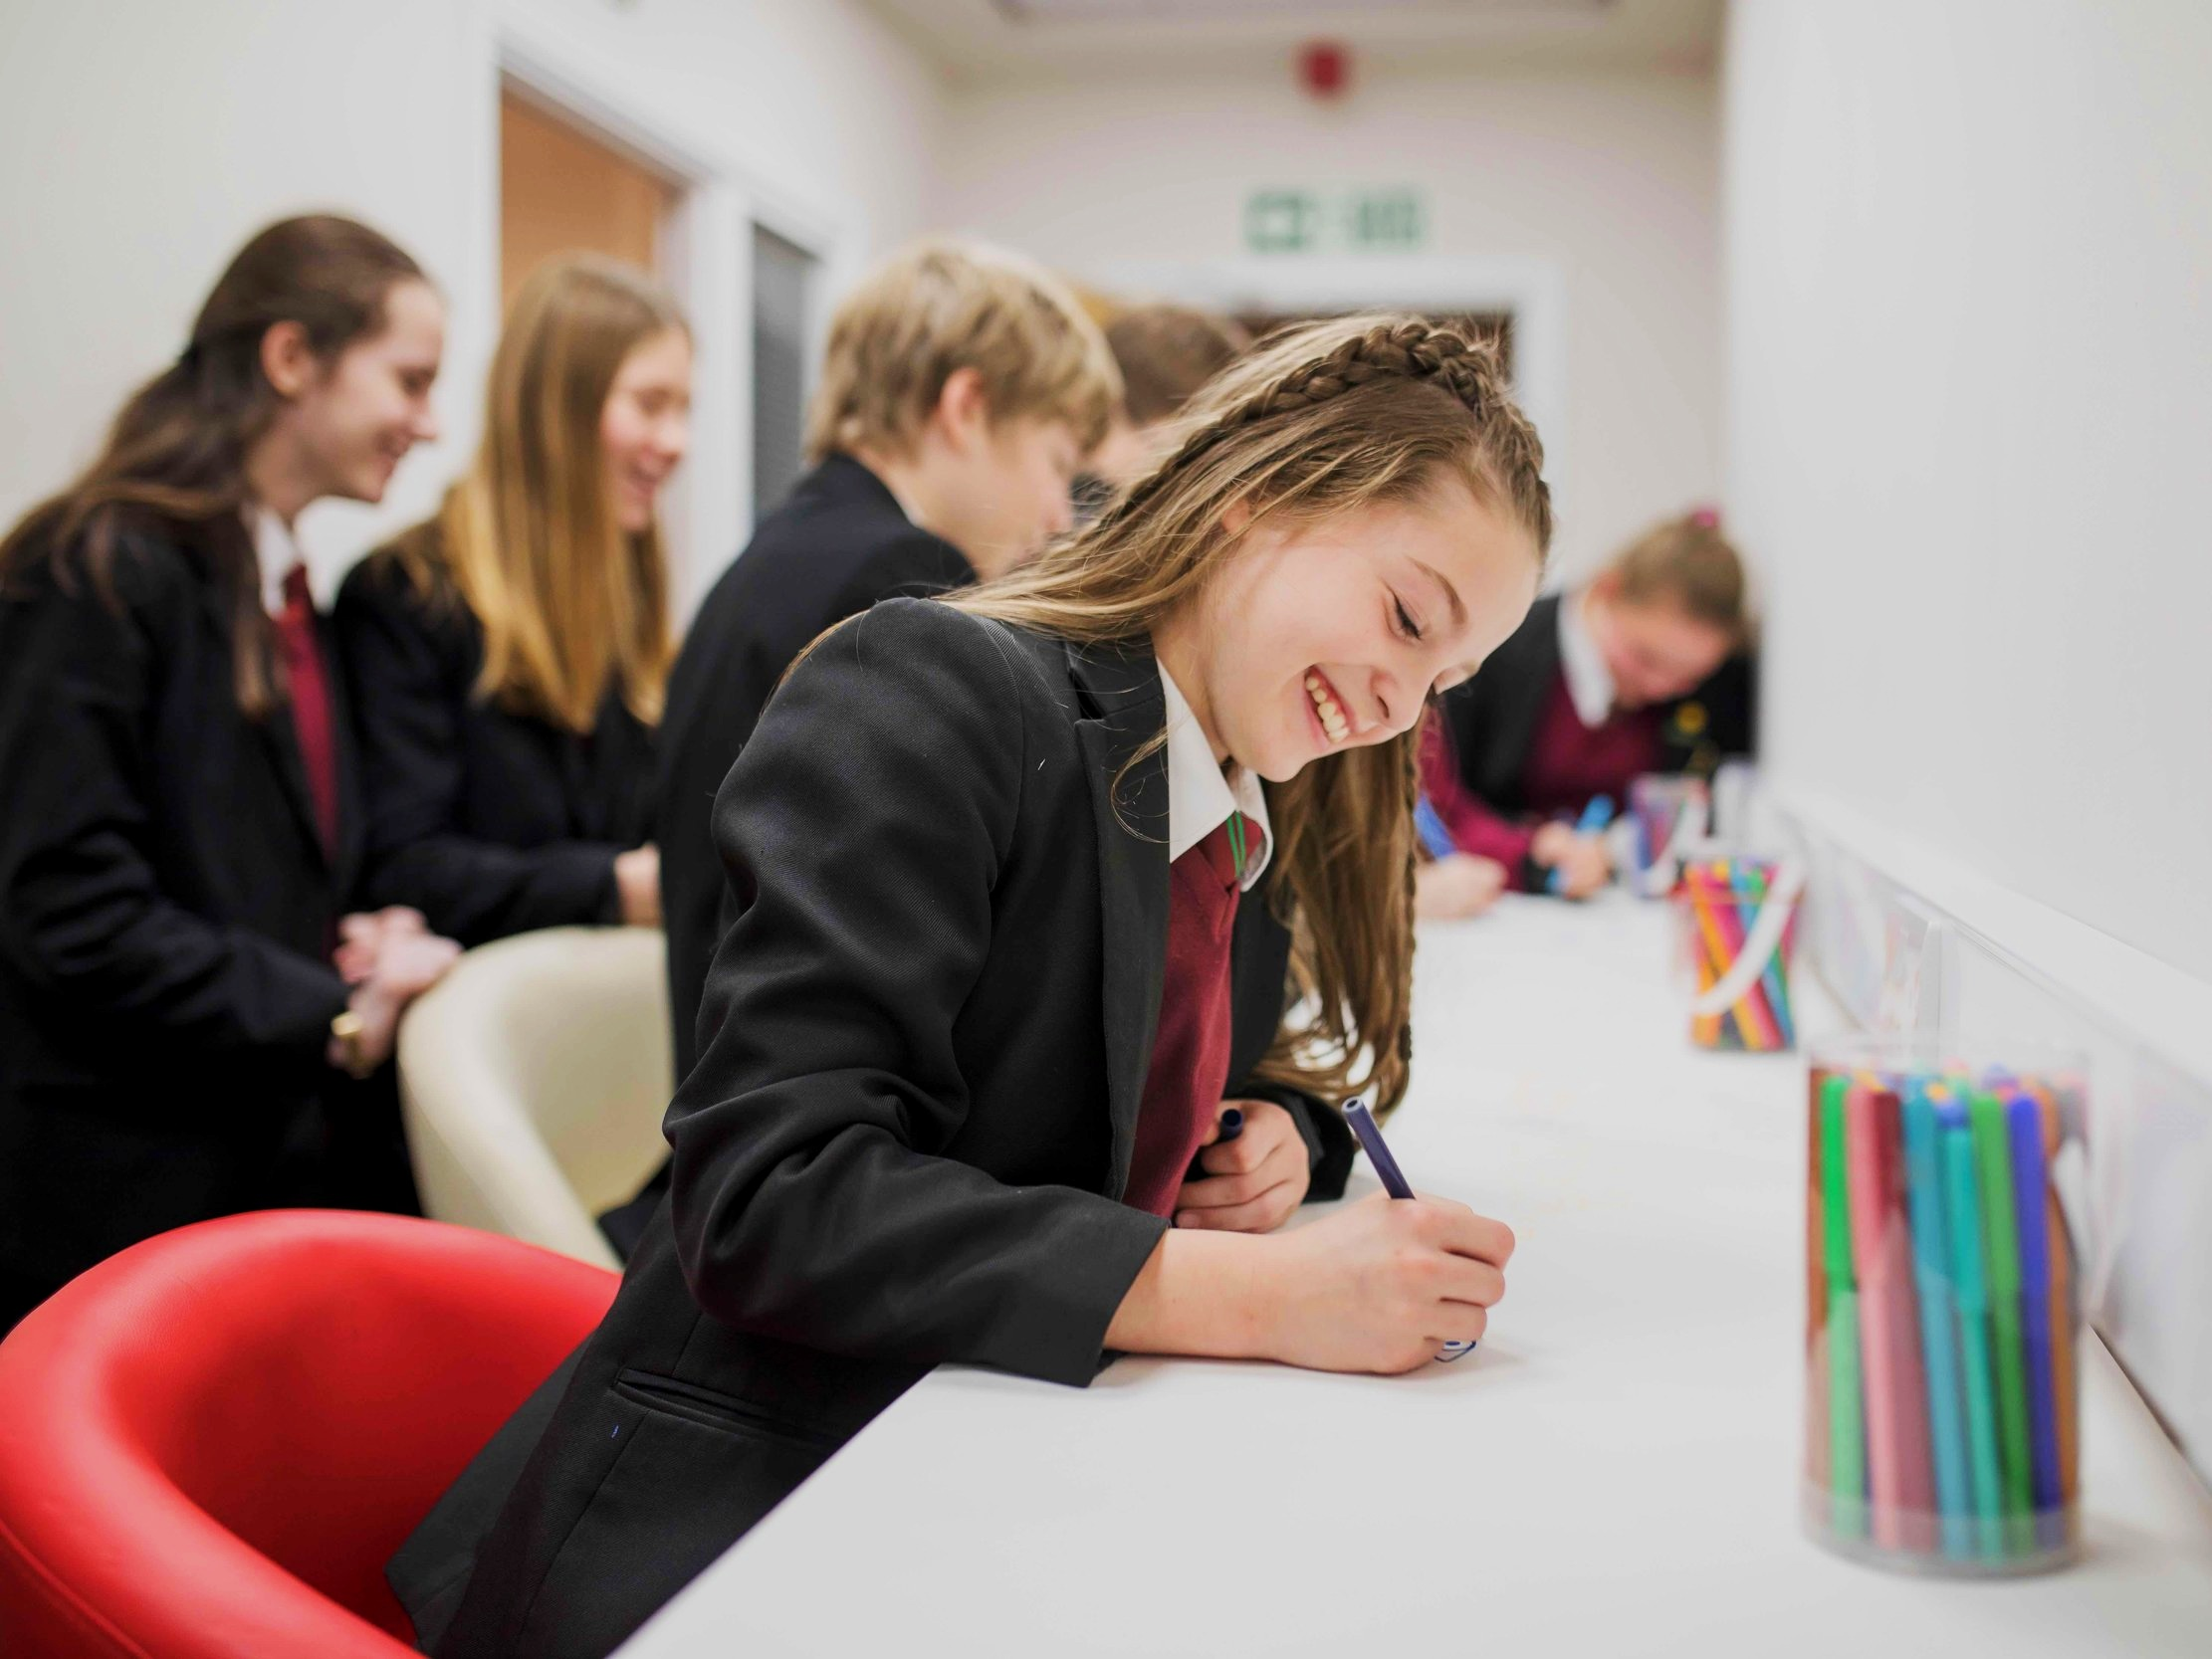 Alternative Education - For young people whose mental health is affecting school life